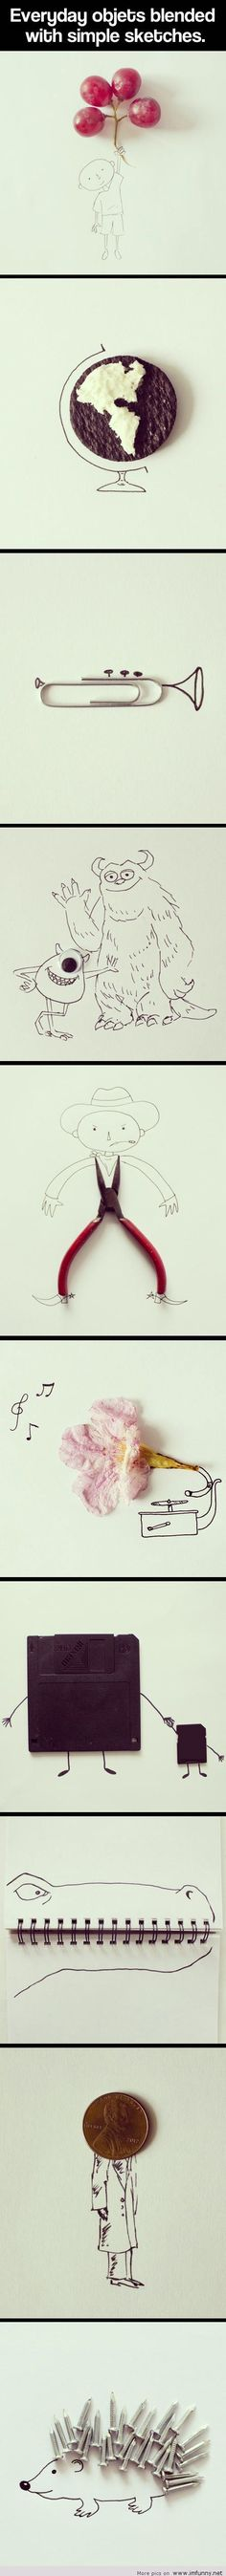 Creative And #Funny Sketches.